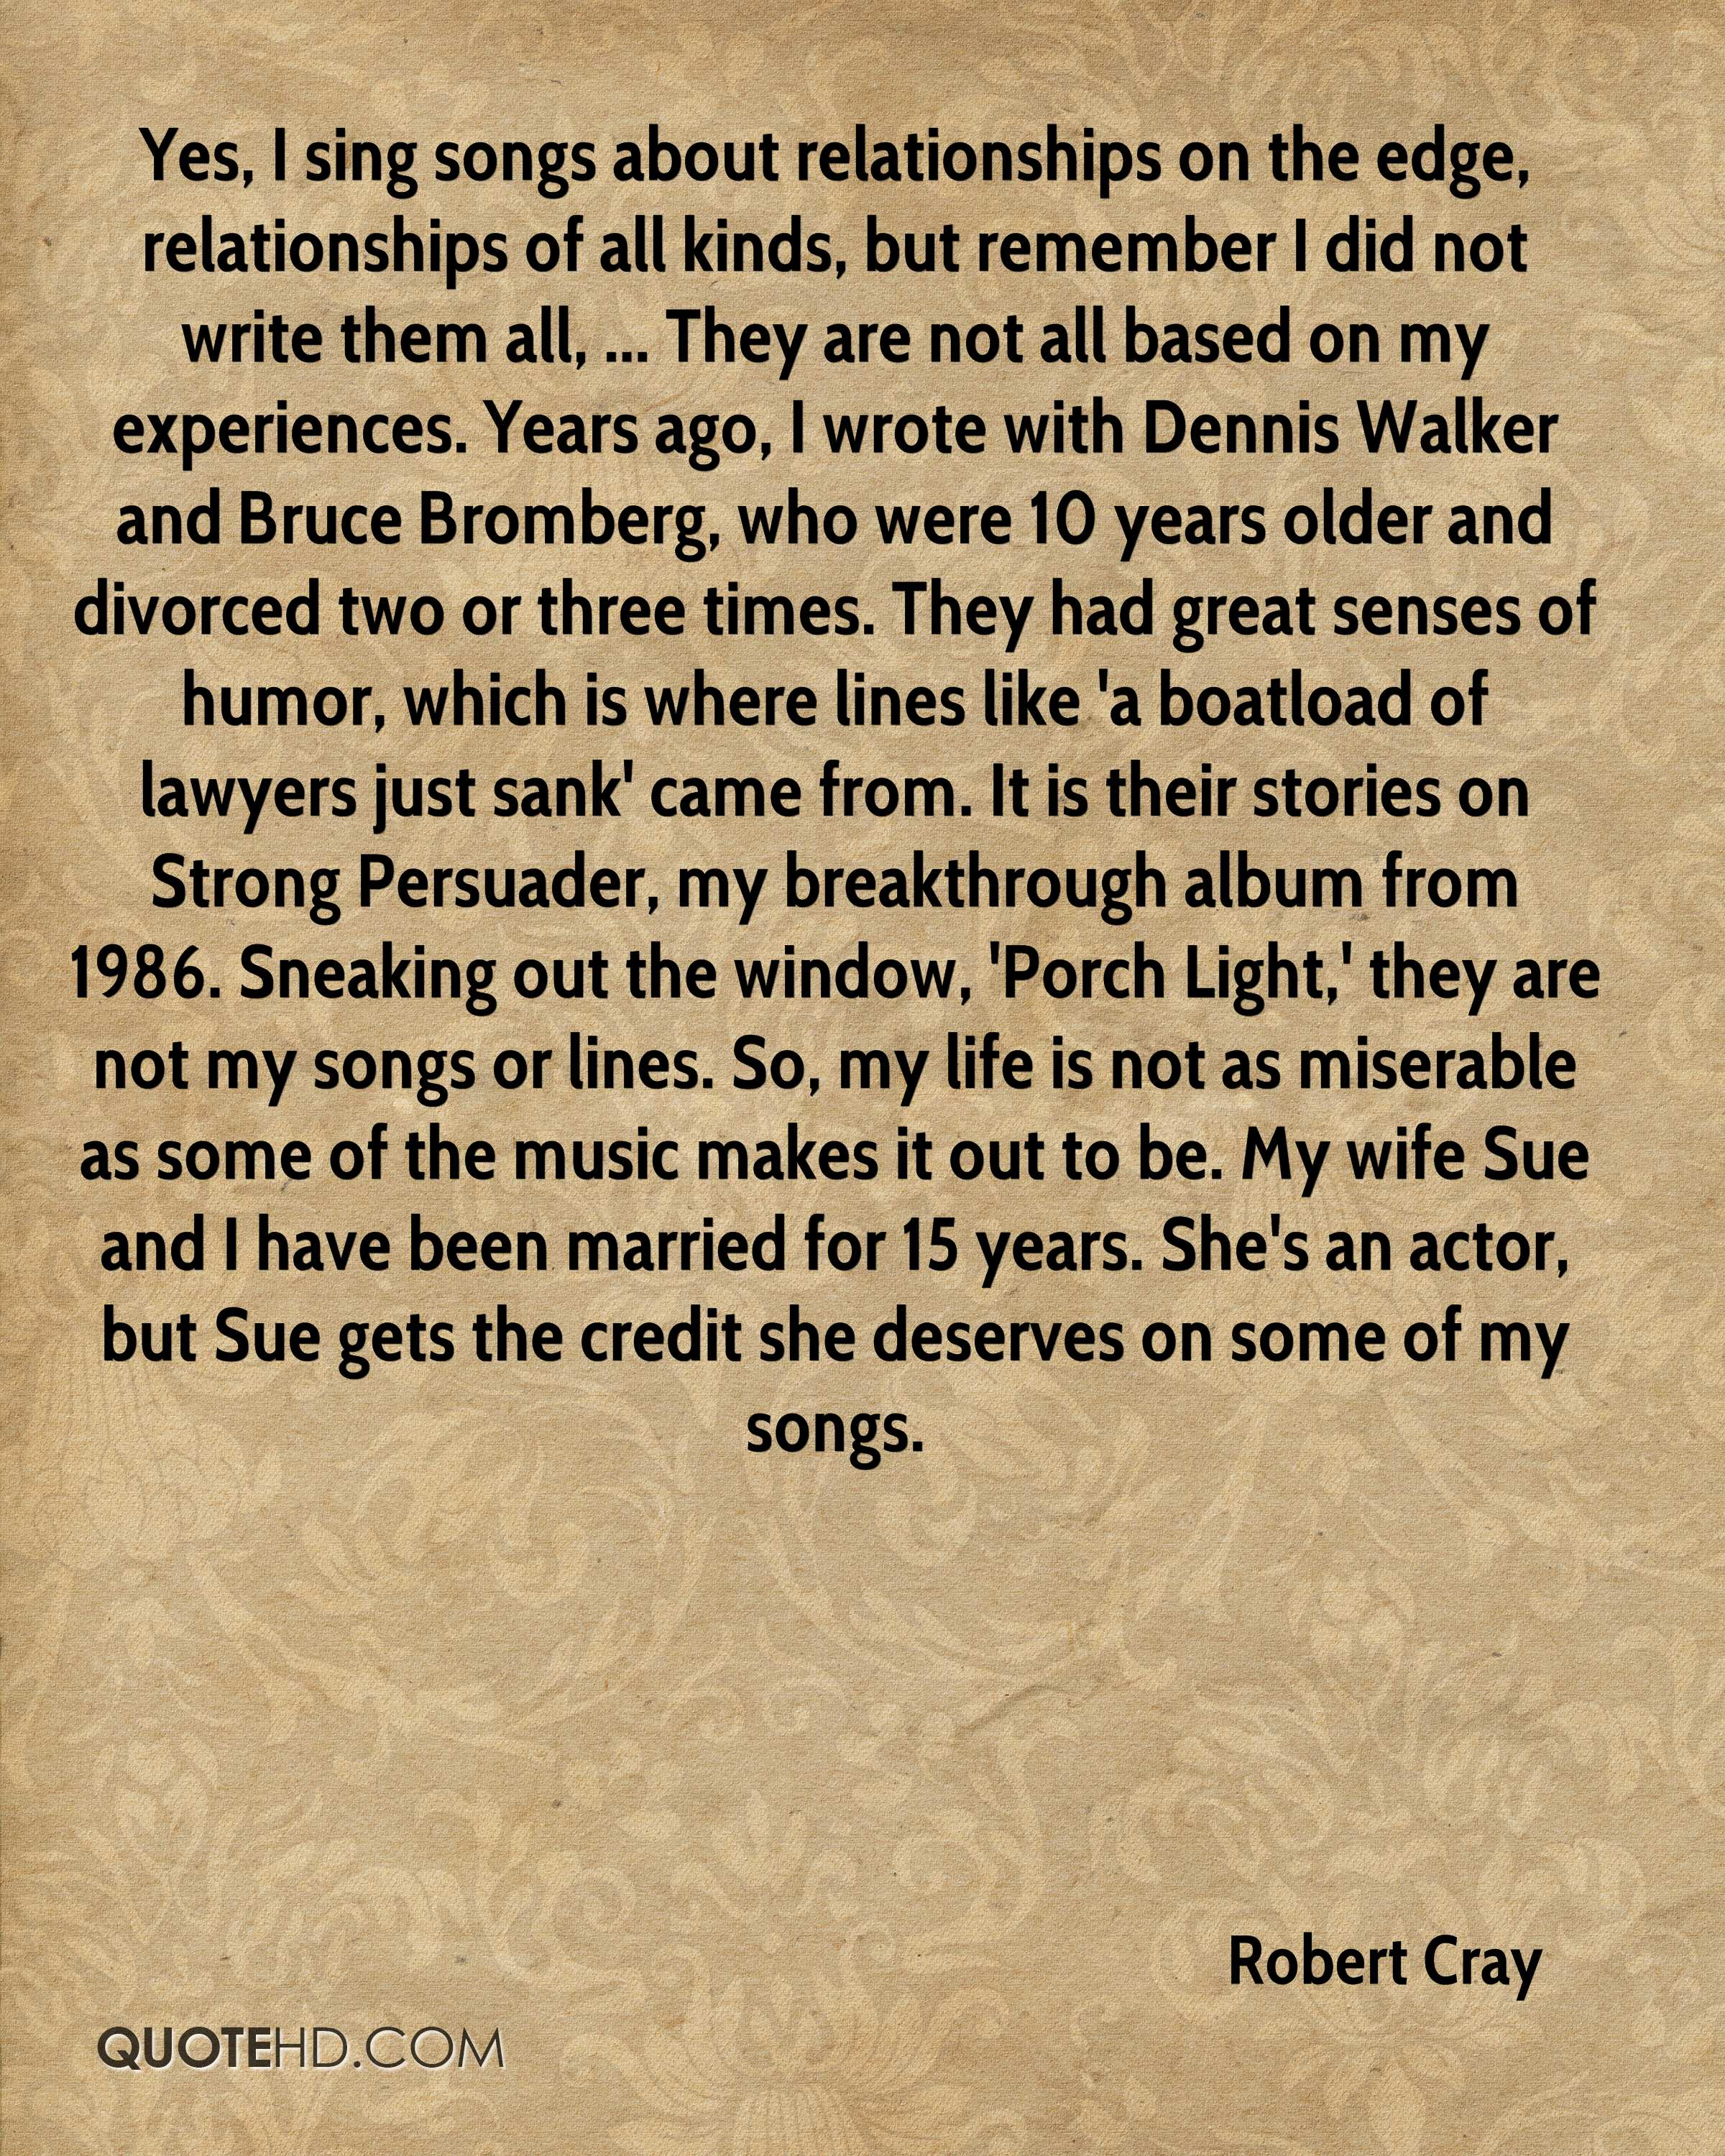 Porch Light Quotes: Robert Cray Marriage Quotes